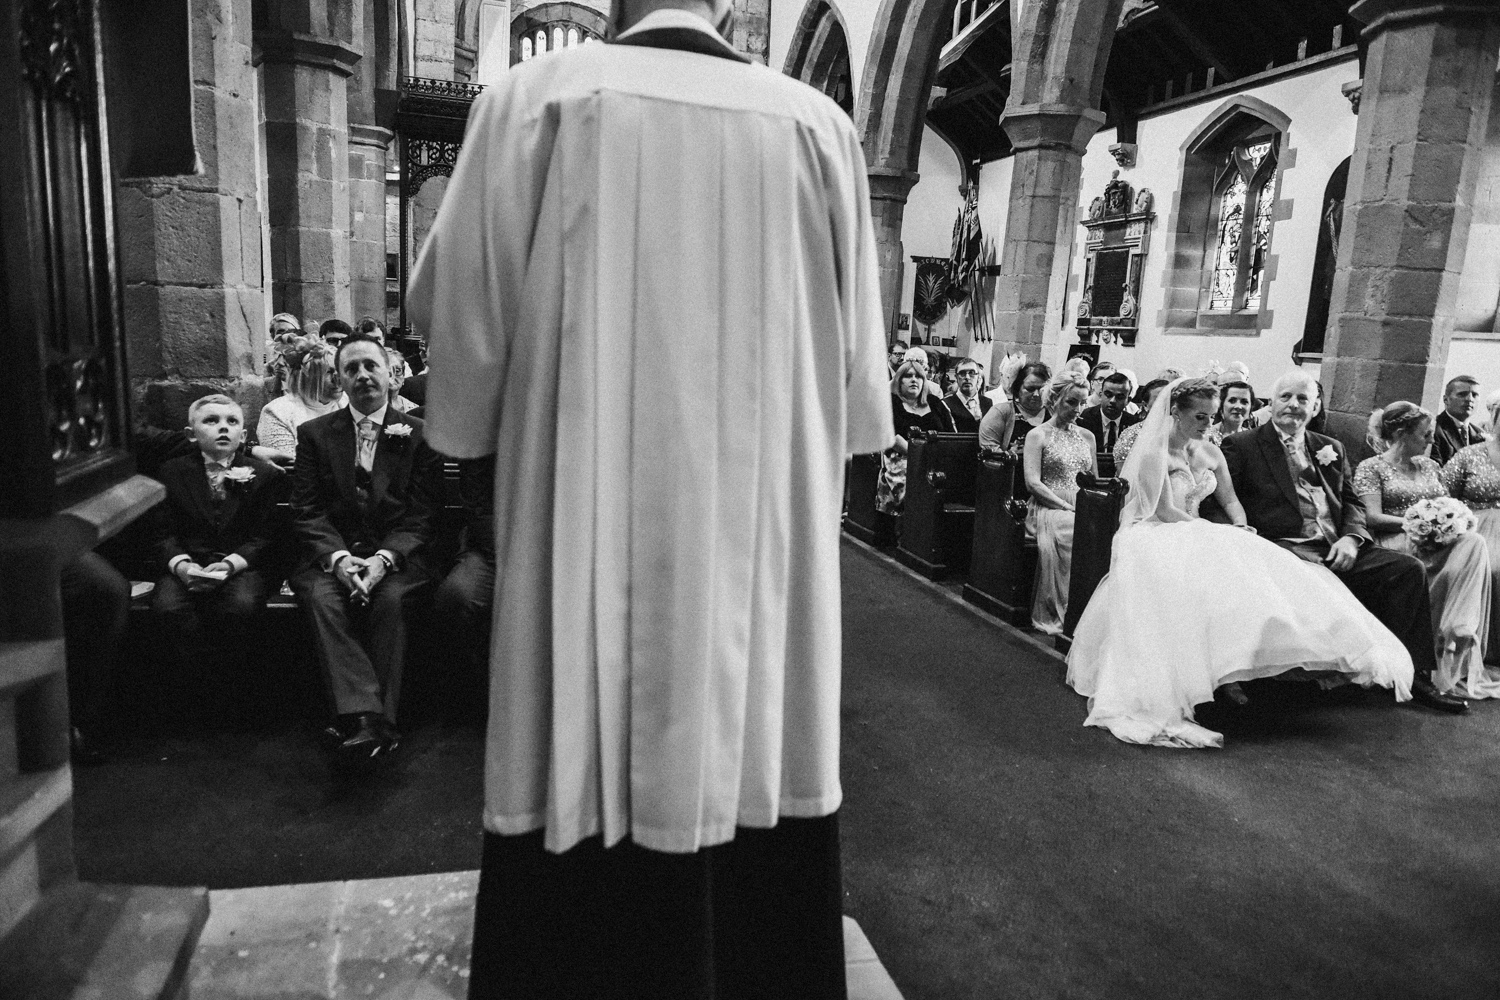 Vicar conducting the ceremony